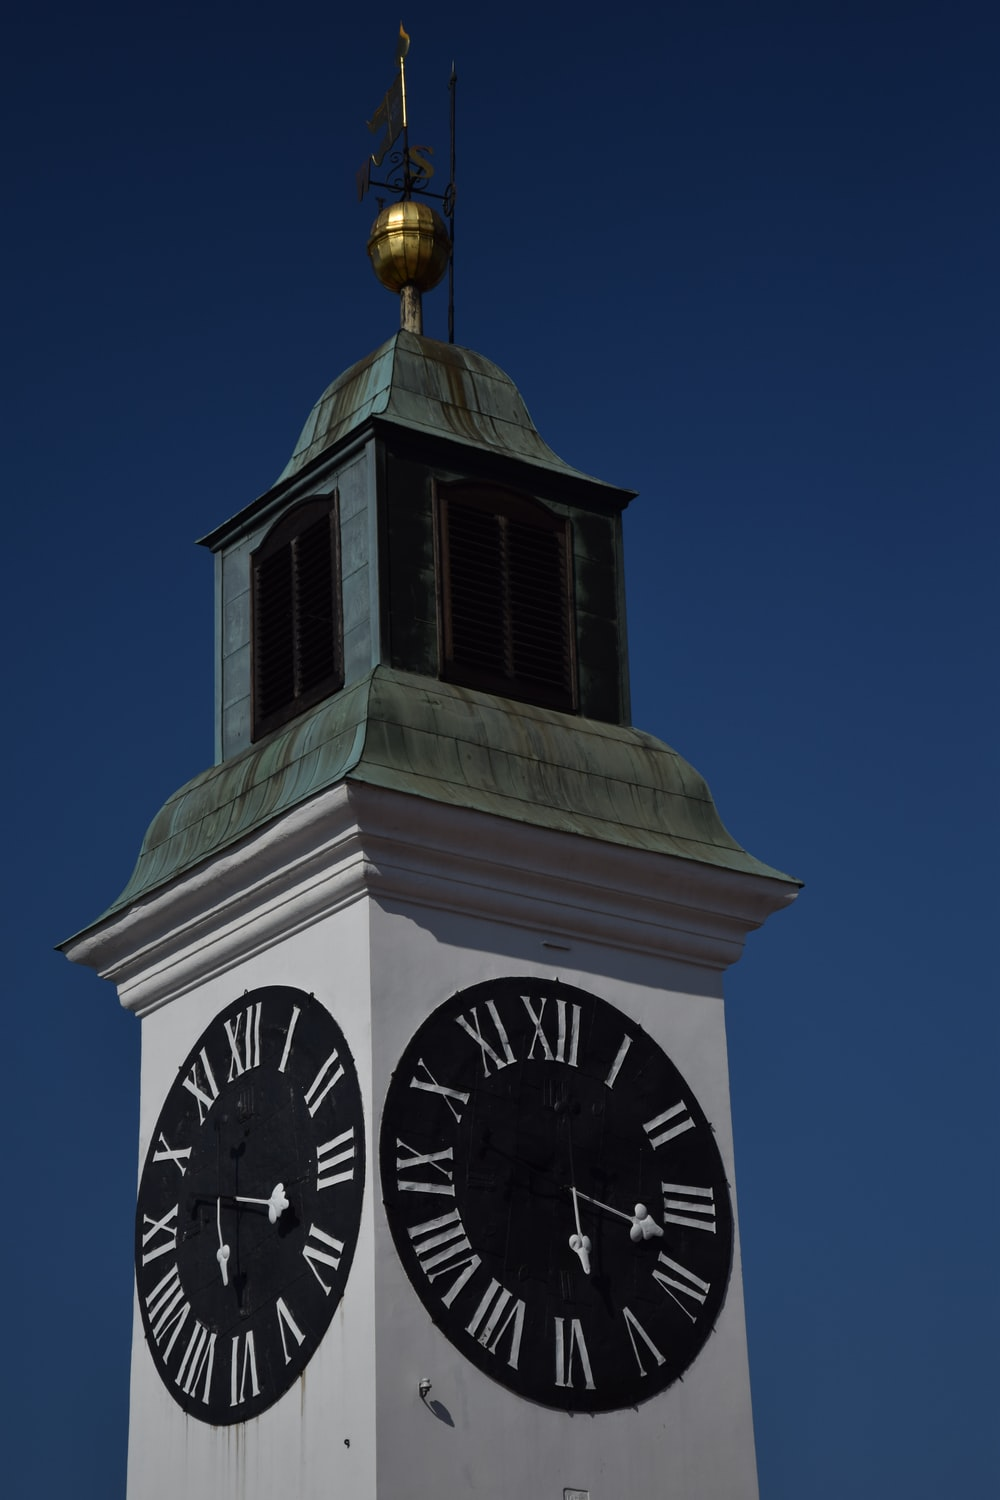 white and black clock tower under blue sky during daytime